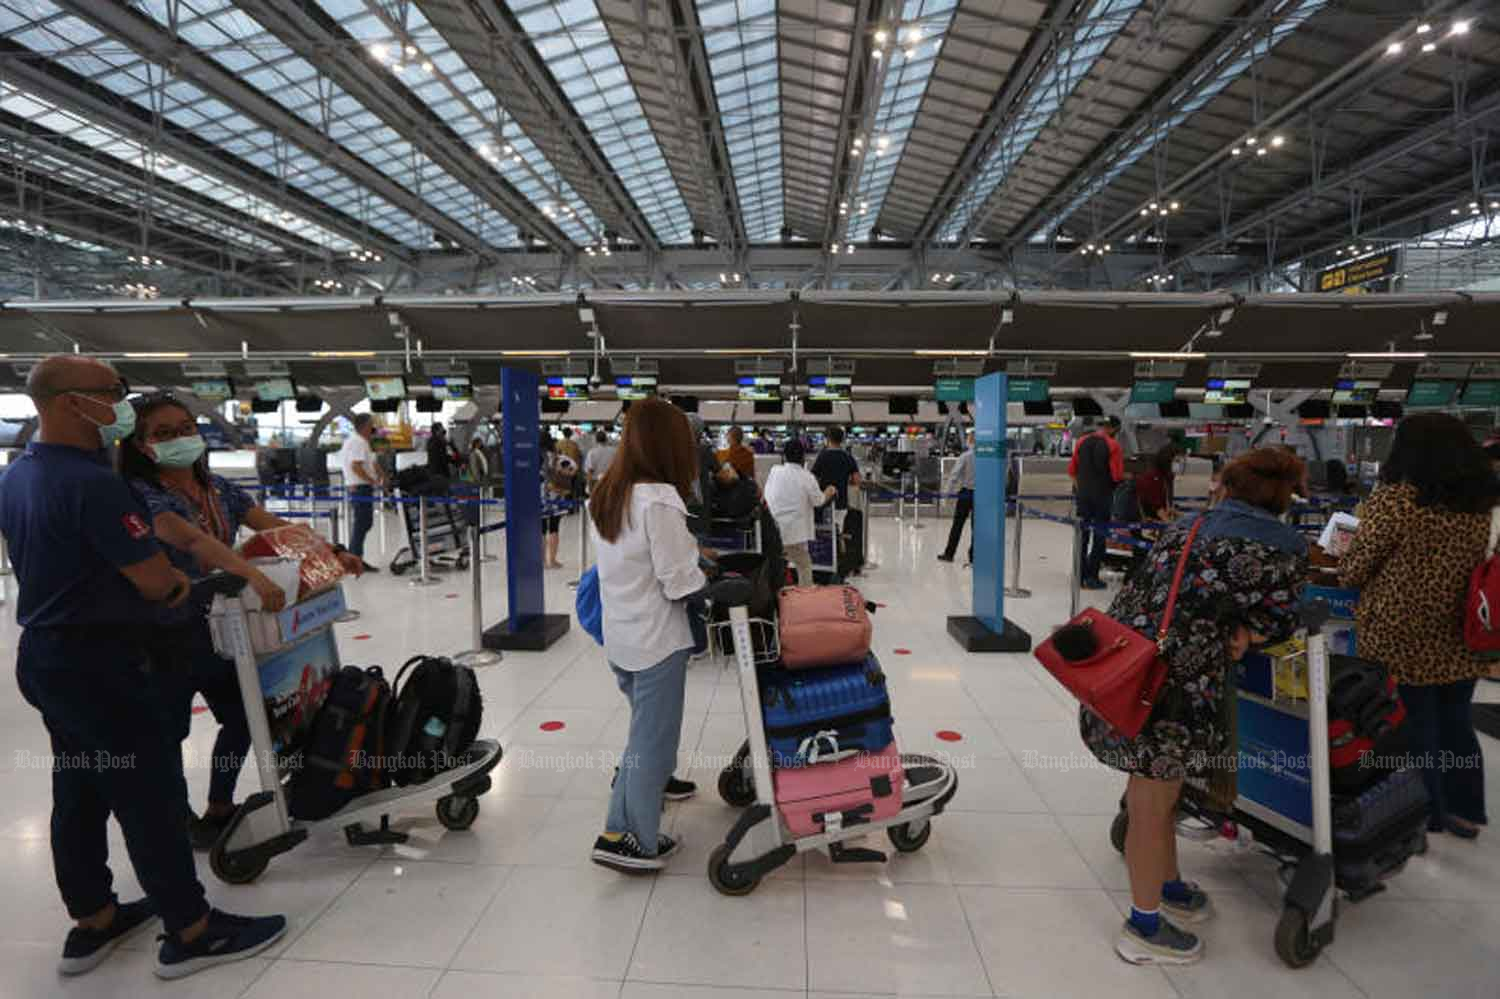 Passengers return to Suvarnabhumi airport in Samut Prakan province on Monday as domestic flights resume, but international tourism is still some time off, due to concerns about the travel bubble idea. (Photo: Varuth Hirunyatheb)